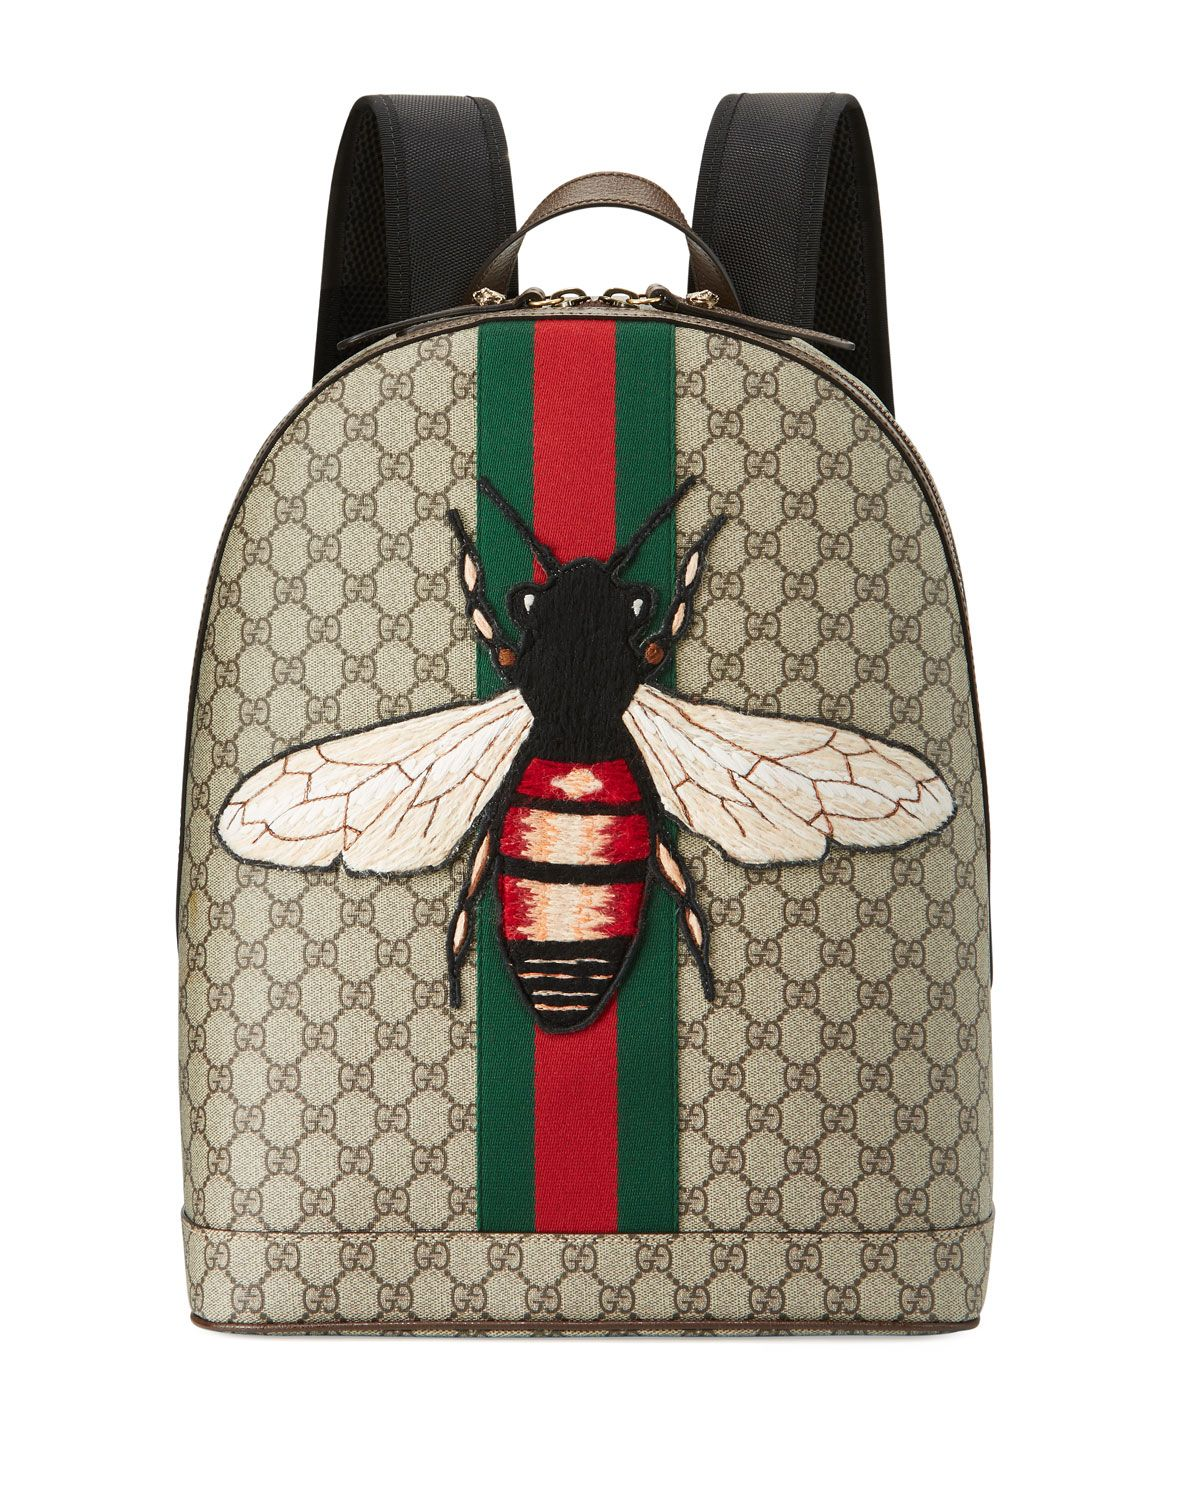 91b94bd59 Gucci Animalier backpack in GG supreme canvas with hand-embroidered and  -applied bee appliqu. Signature green/red/green web stripe down center  front.